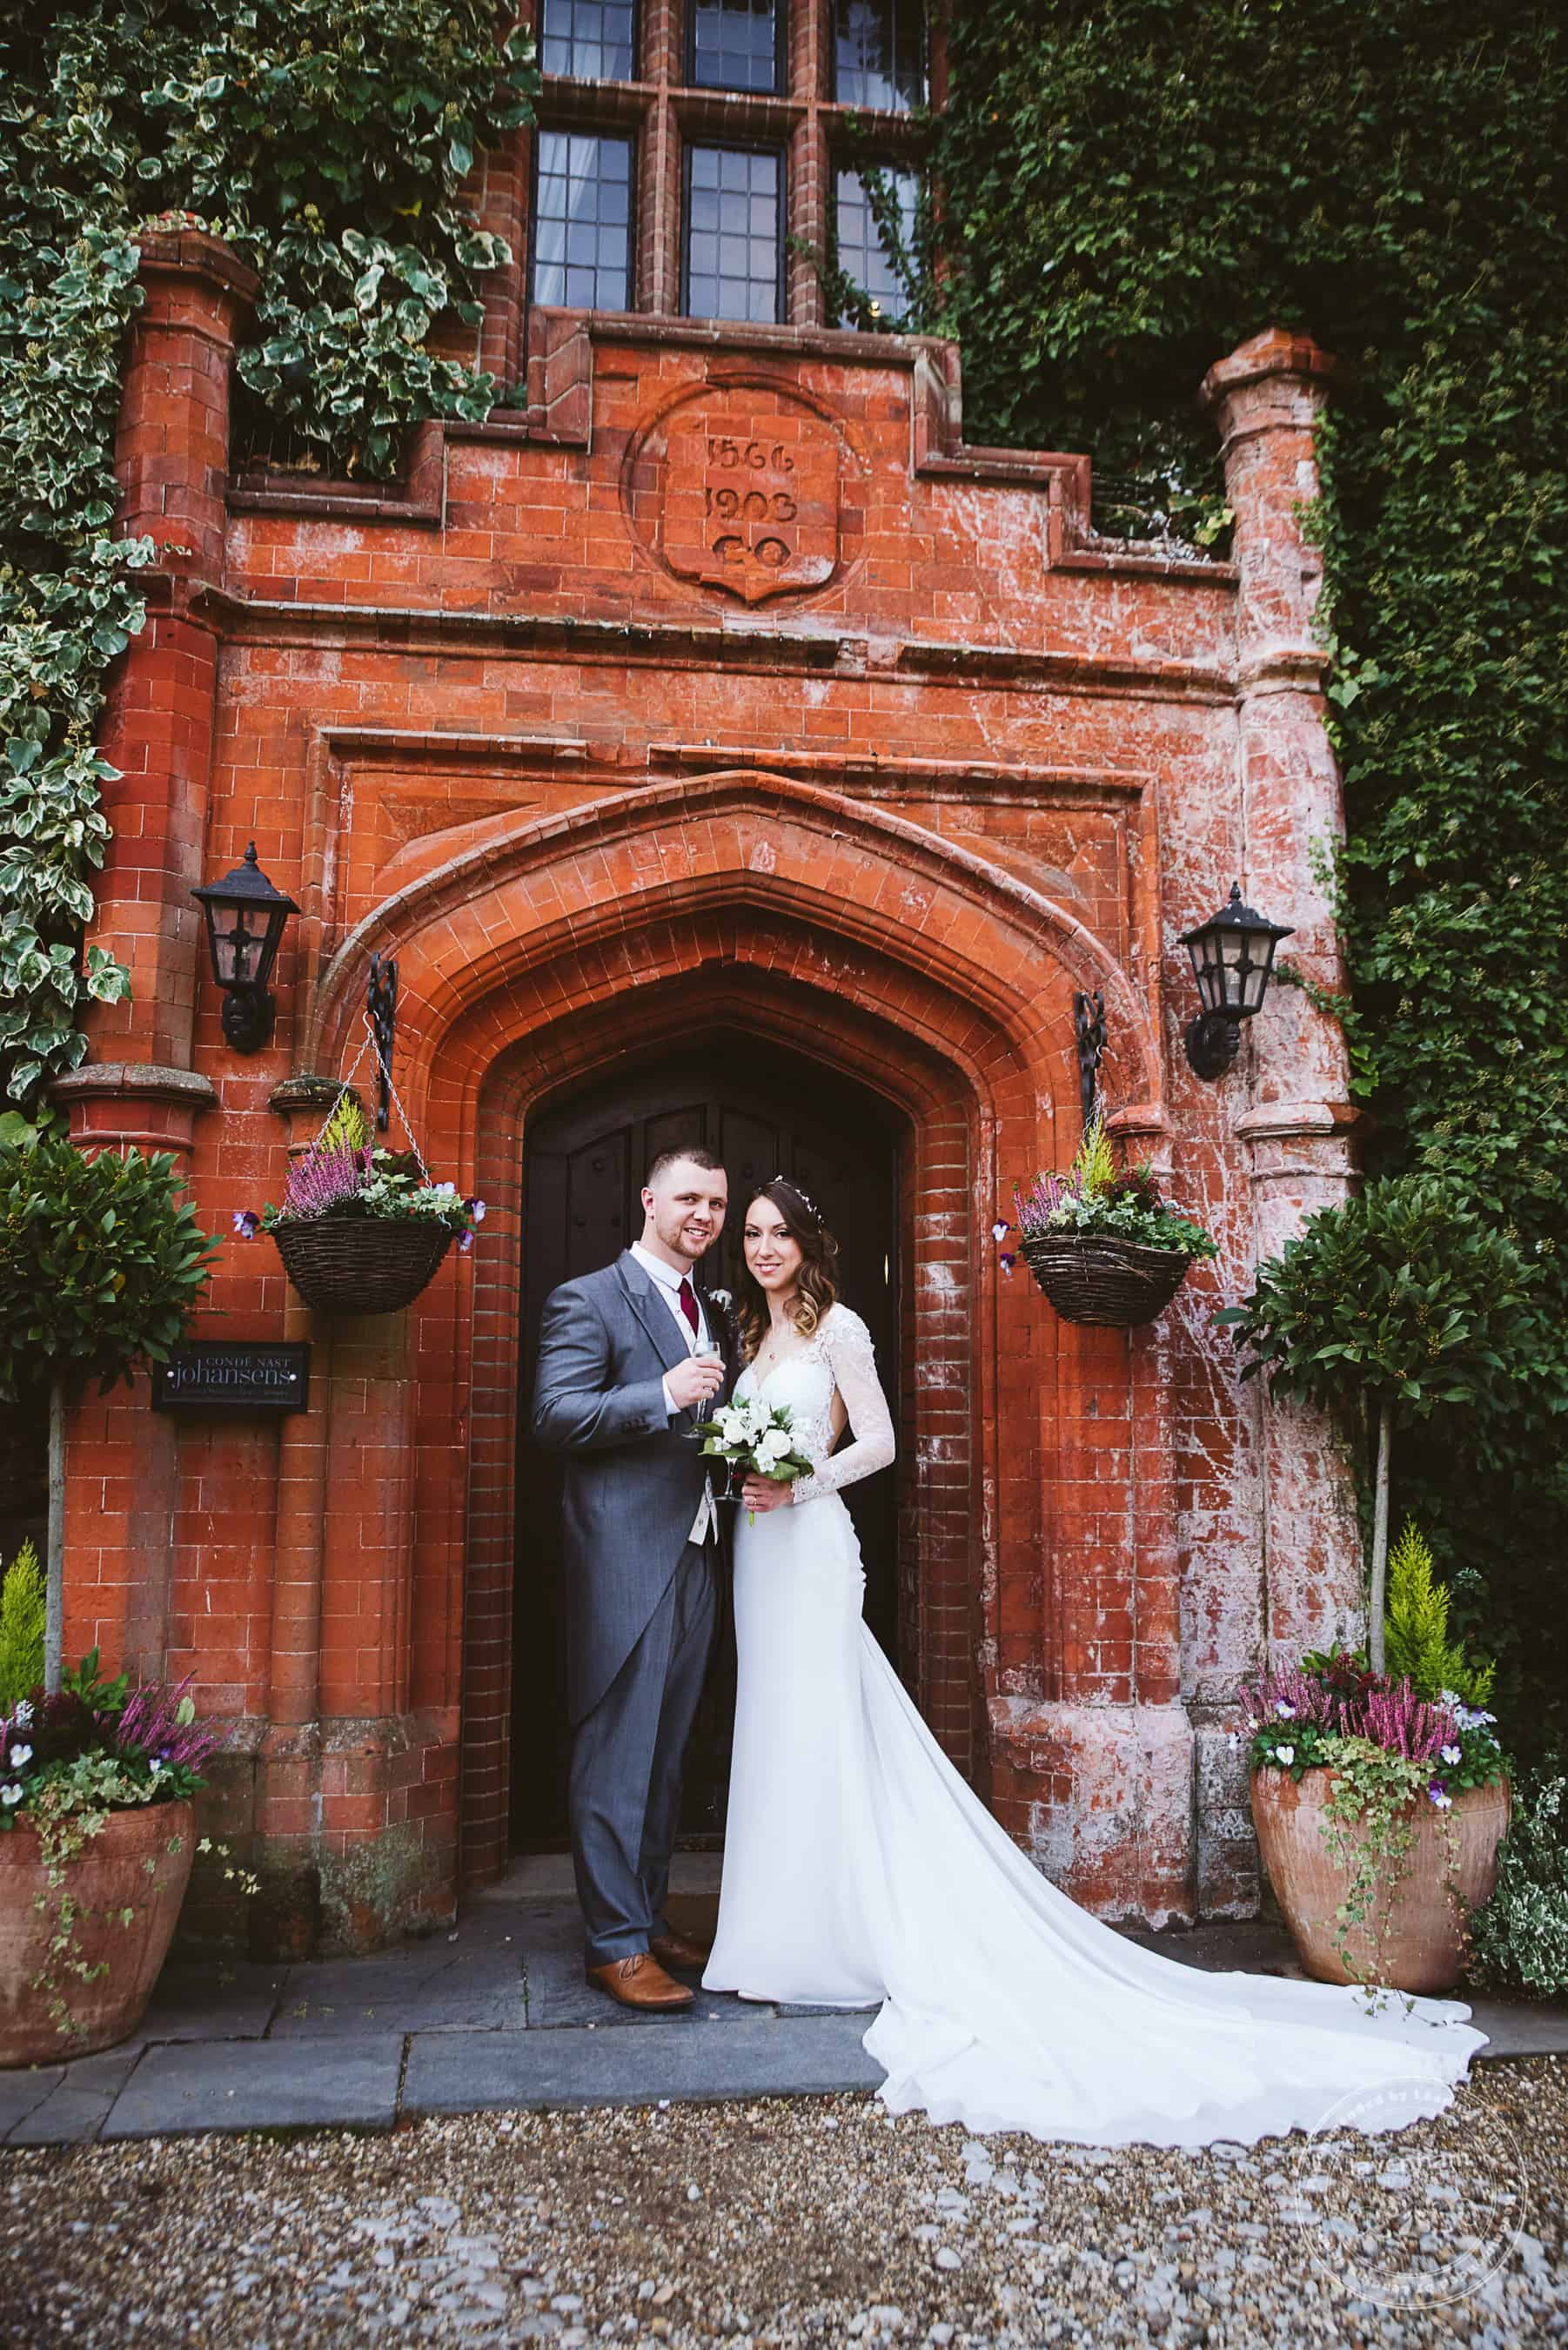 041118 Woodhall Manor Wedding Photography by Lavenham Photographic 045